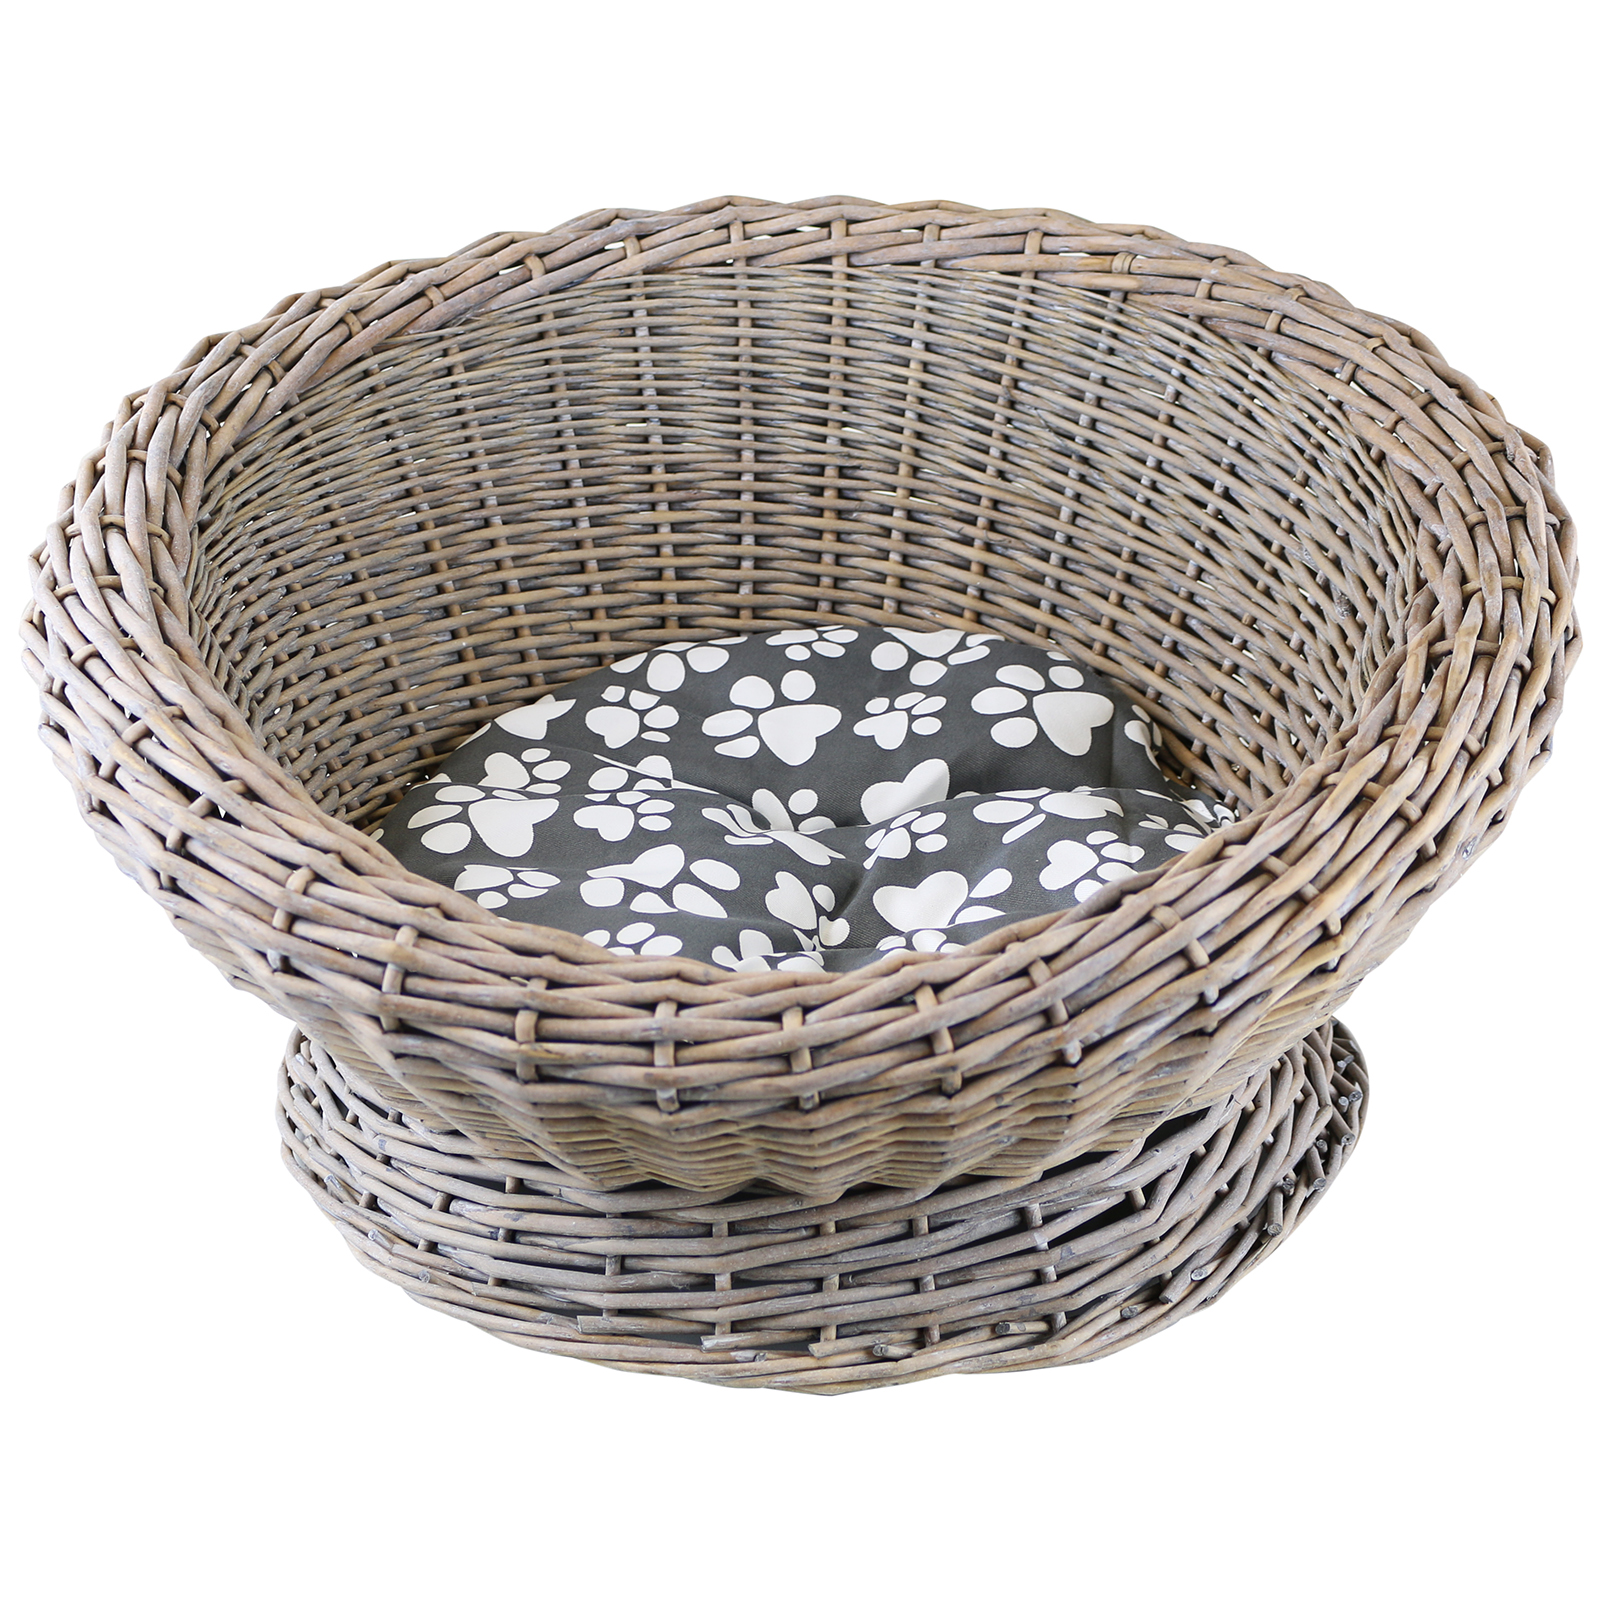 How To Weave A Cat Basket : Me my woven wicker cat kitten round pet bed basket igloo